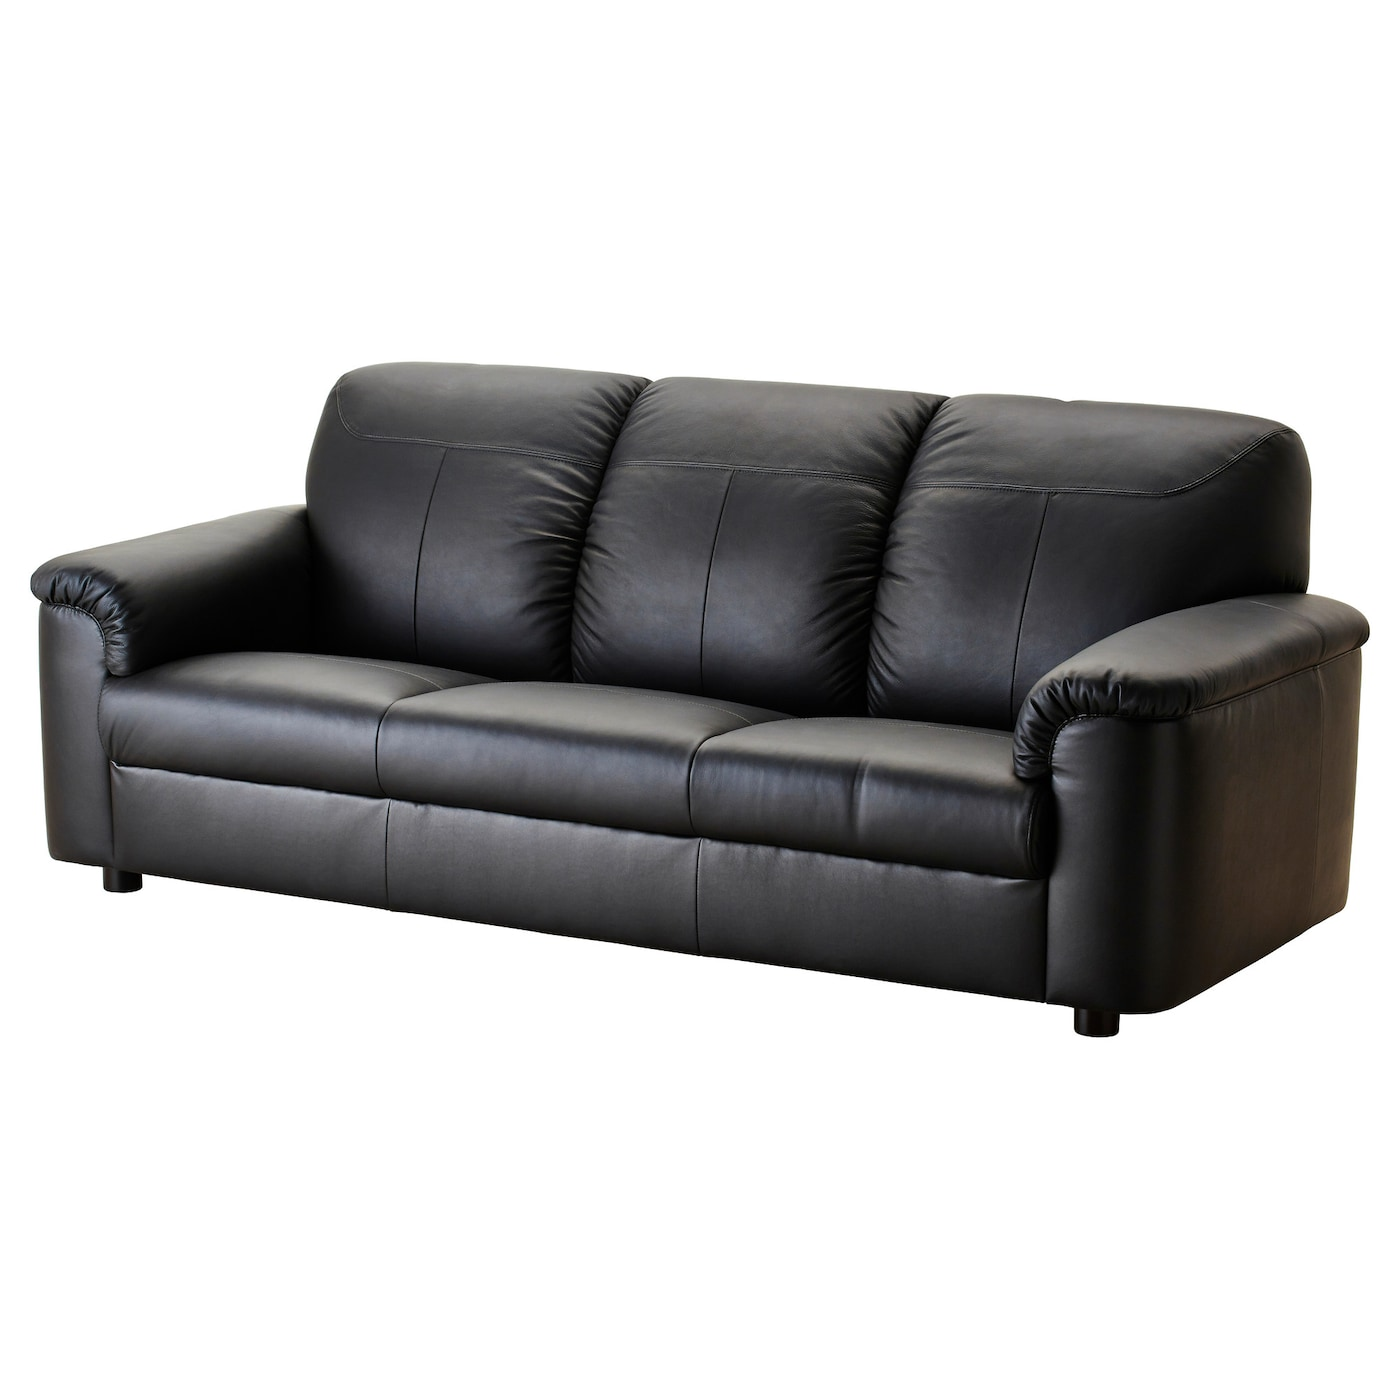 Timsfors three seat sofa mjuk kimstad black ikea for Ikea leather loveseat